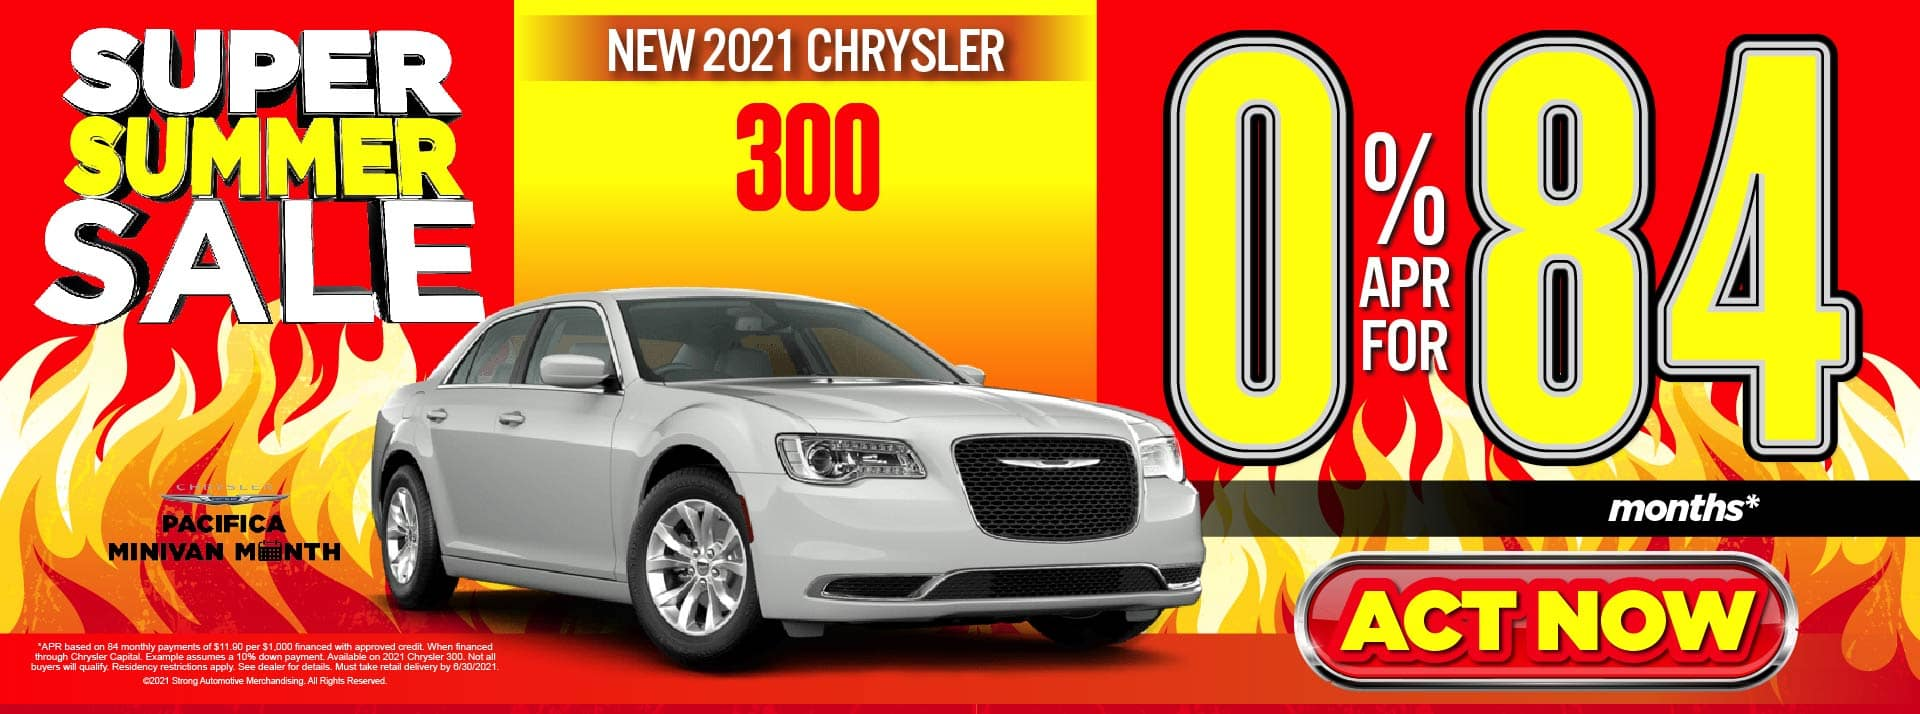 NEW 2021 CHRYSLER 300 0% APR FOR 84 MOS* ACT NOW